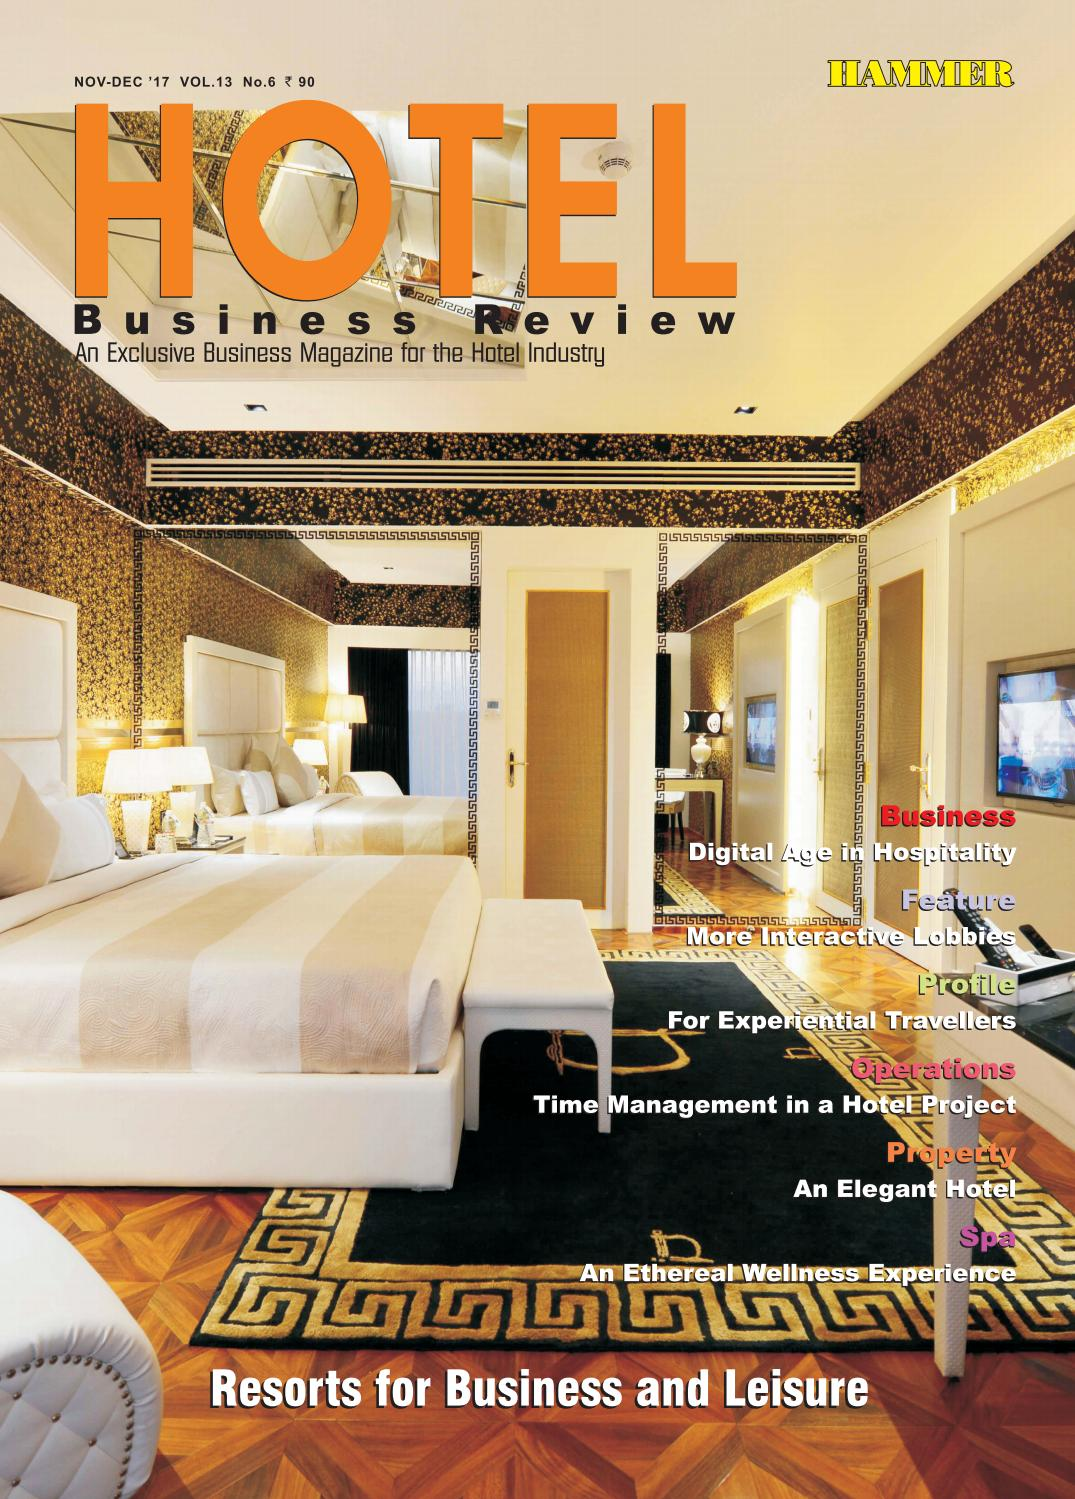 79809661a44 Hotel Business Review (Nov-Dec 17) by Hammer Publishers Pvt. Ltd - issuu